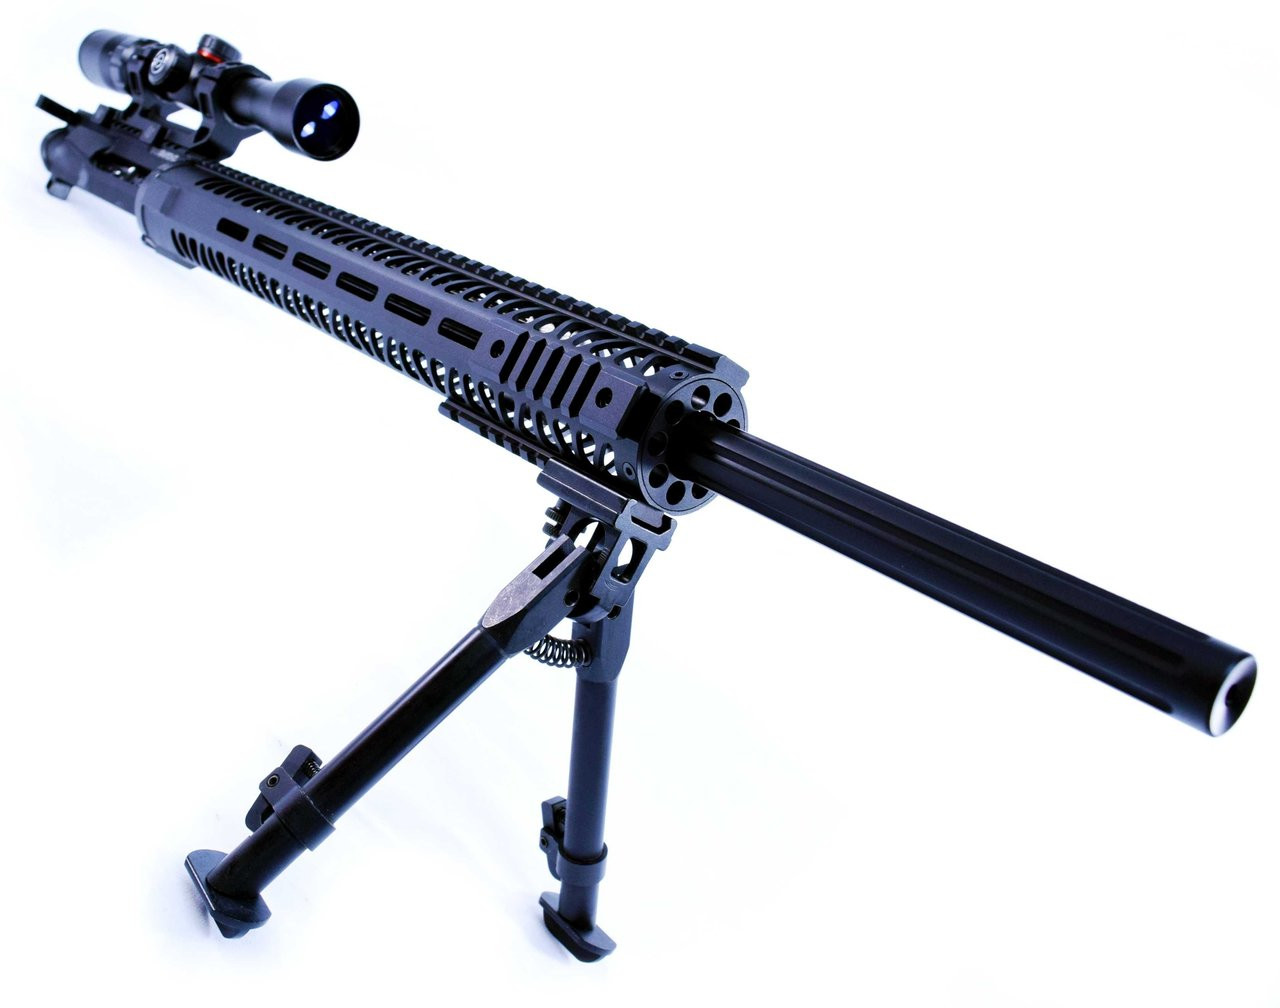 24 OBSIDIAN ULTRA MATCH PRECISION UPPER   1:9   SCOUT 16   5.56 WYLDE STRAIGHT FLUTED  